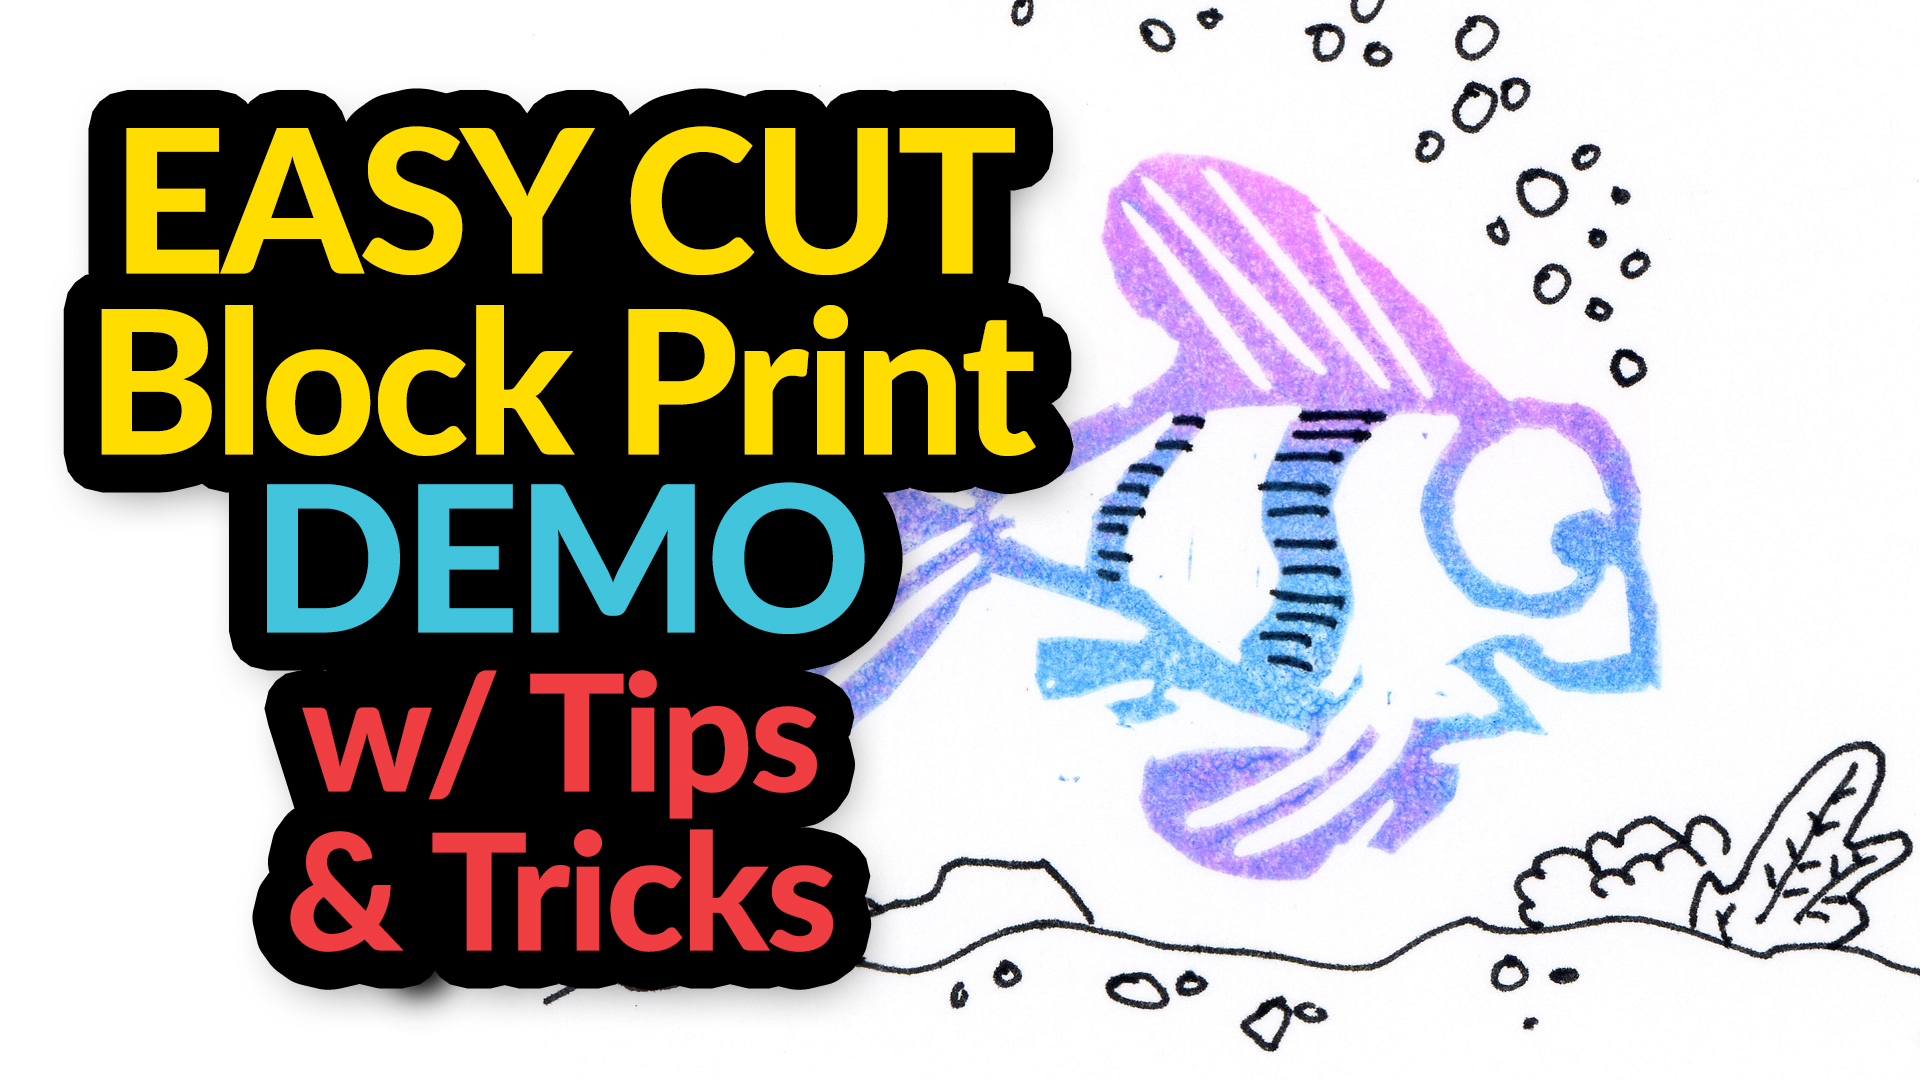 In this episode from Smile Create Repeat, artist/illustrator Tony Luongo takes you from his sketch book to a finished block print using a lino cutter and Easy Cut Block. Listen to him as he tries new techniques and discovers what works and what doesn't.  Illustration made using a variety of supplies from the August 2016 SmileCreateRepeat.com art supply subscription box.